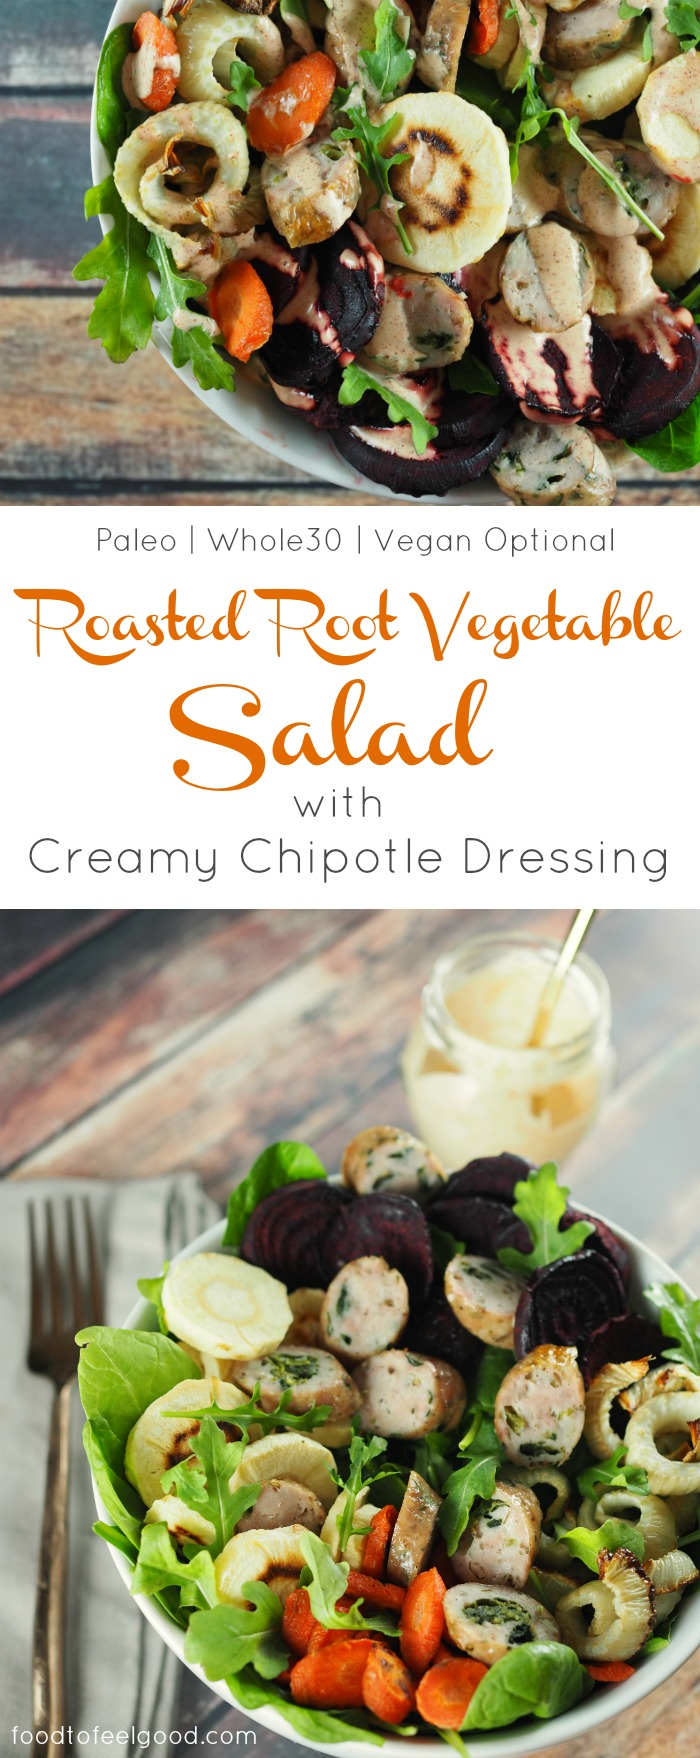 Roasted Root Vegetable Salad with Creamy Dairy-Free Chipotle Dressing | Paleo | Whole30 | Vegan Optional | This hardy and satisfying salad is sweet, savory, and spicy! A healthy and comforting recipe that's really easy to make. #whole30recipes #paleorecipes #rootvegetables #chipotle